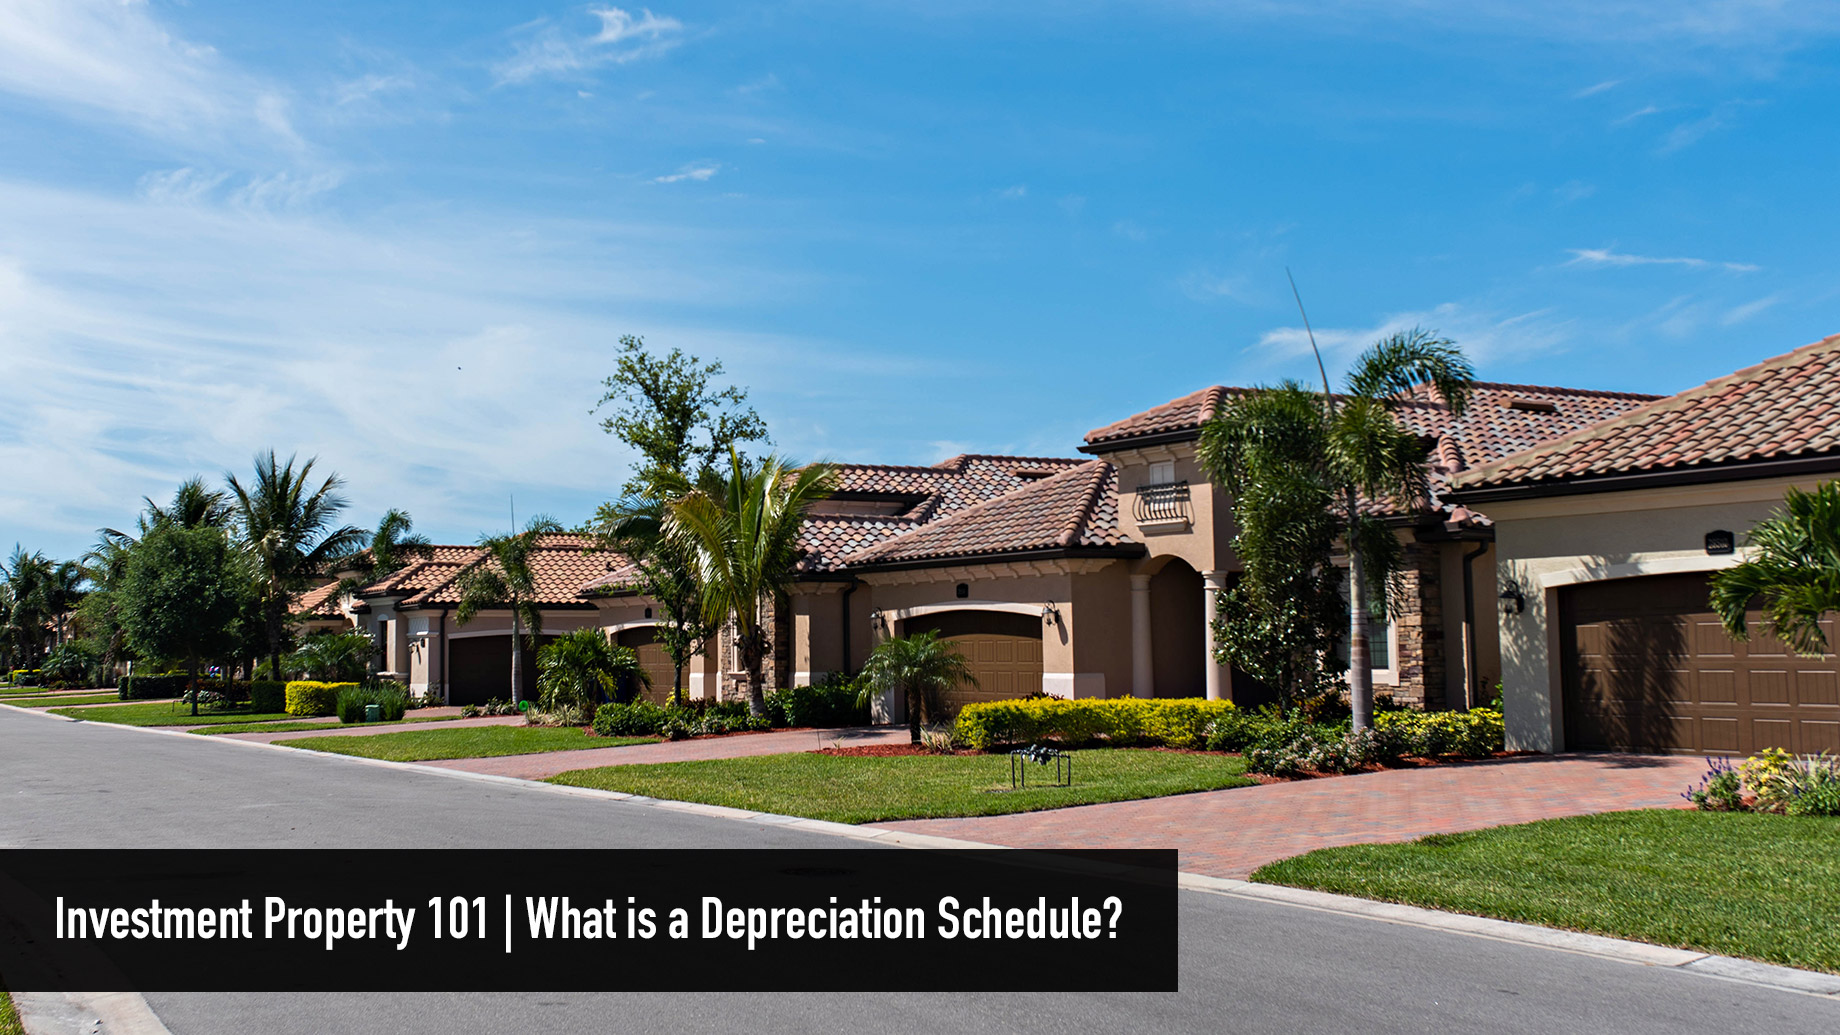 Investment Property 101 - What is a Depreciation Schedule?